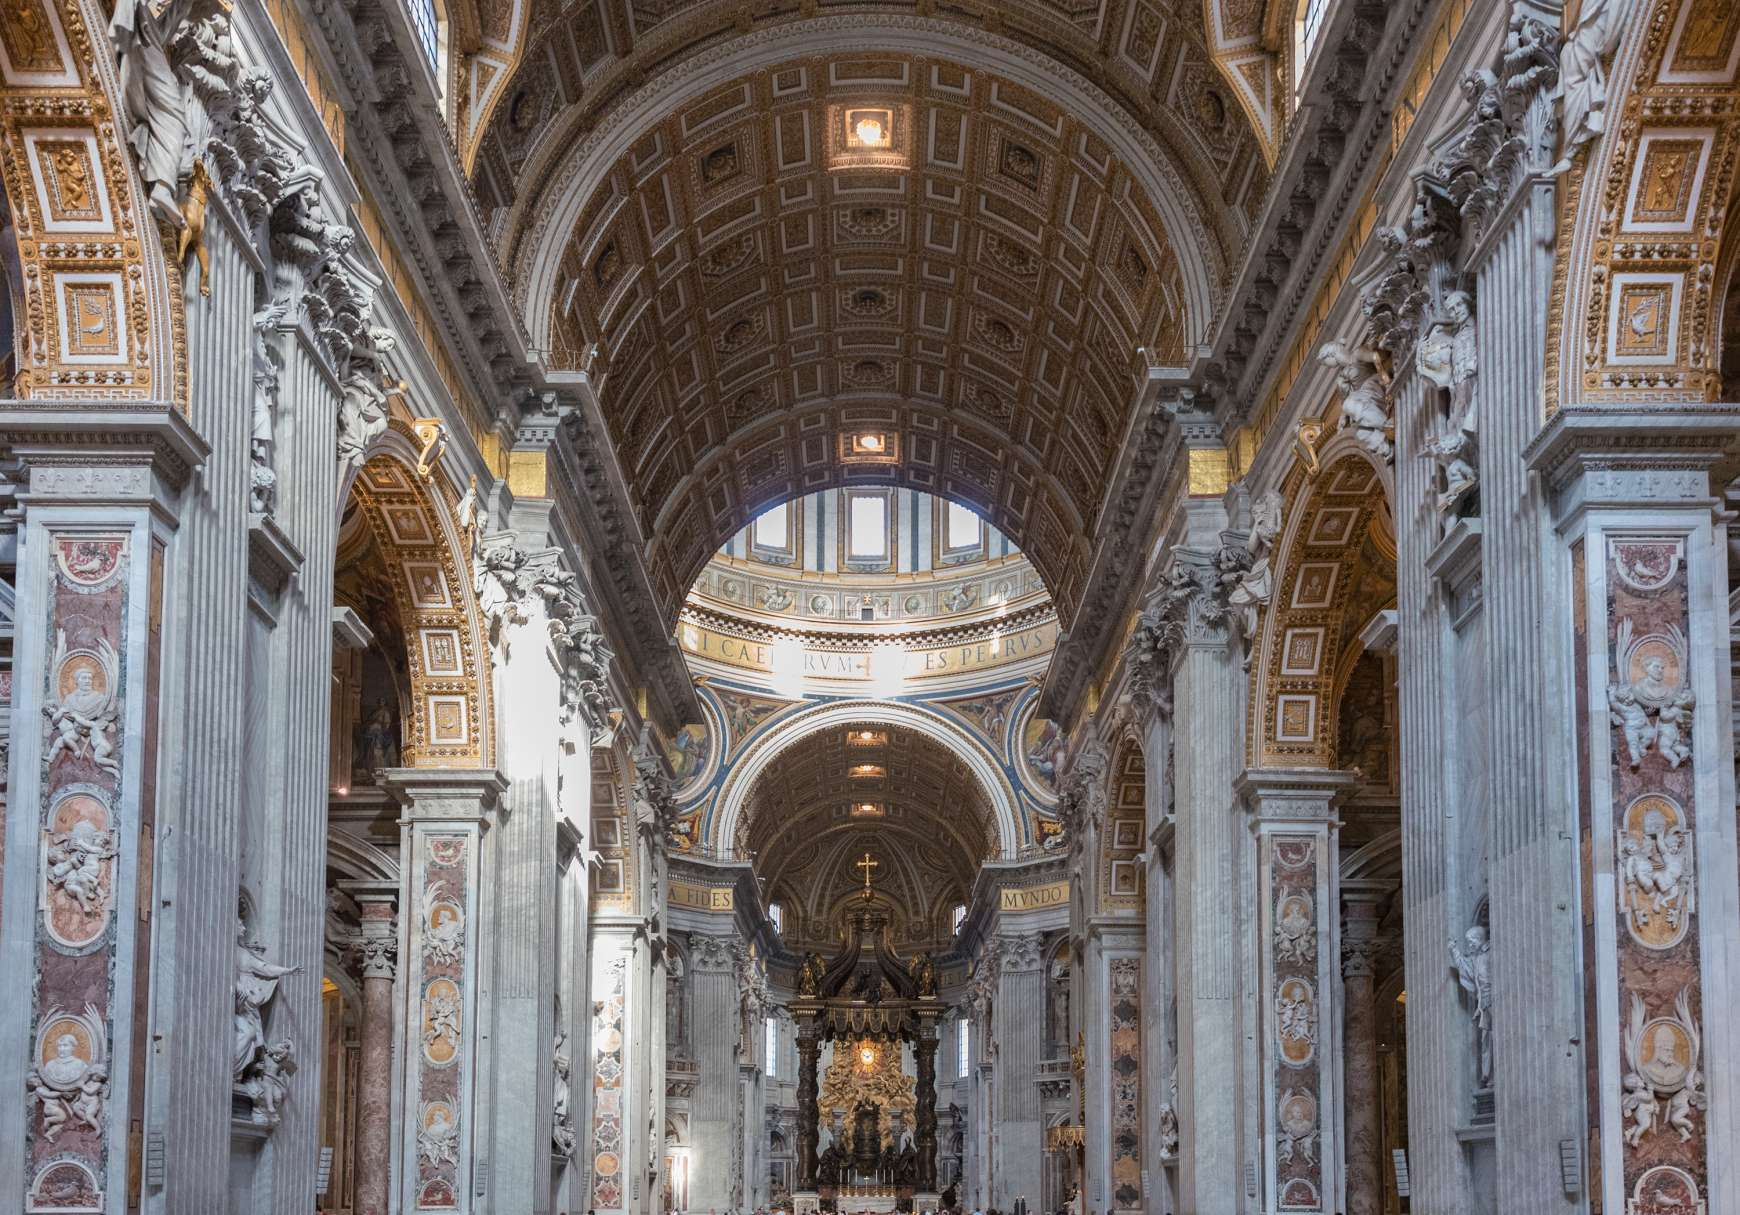 Baroque Rome and The Vatican